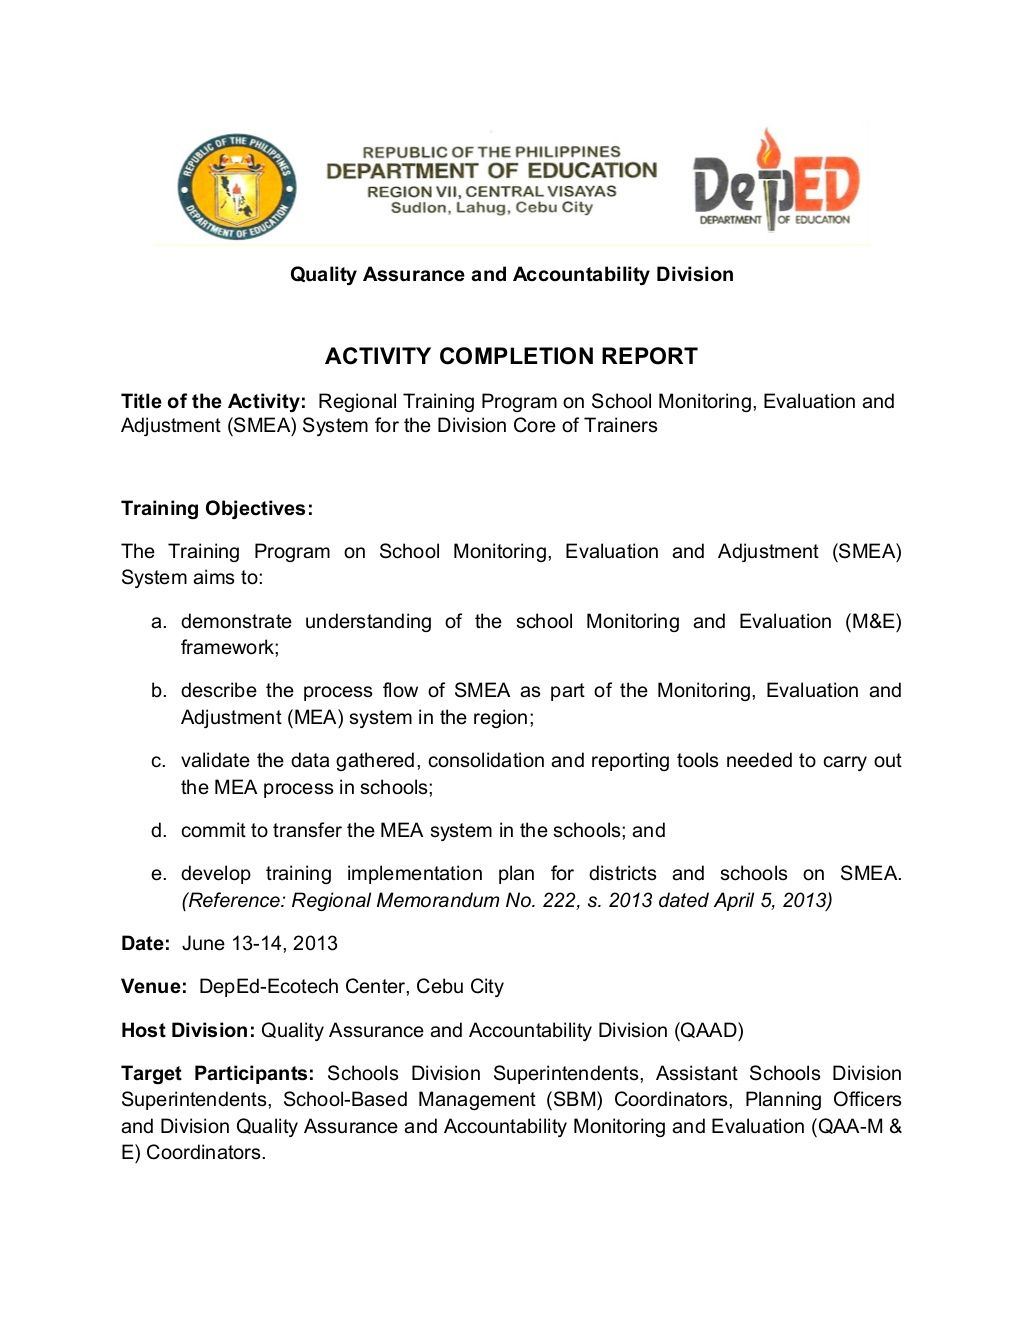 School Monitoring, Evaluation And Adjustment- Activity Completion